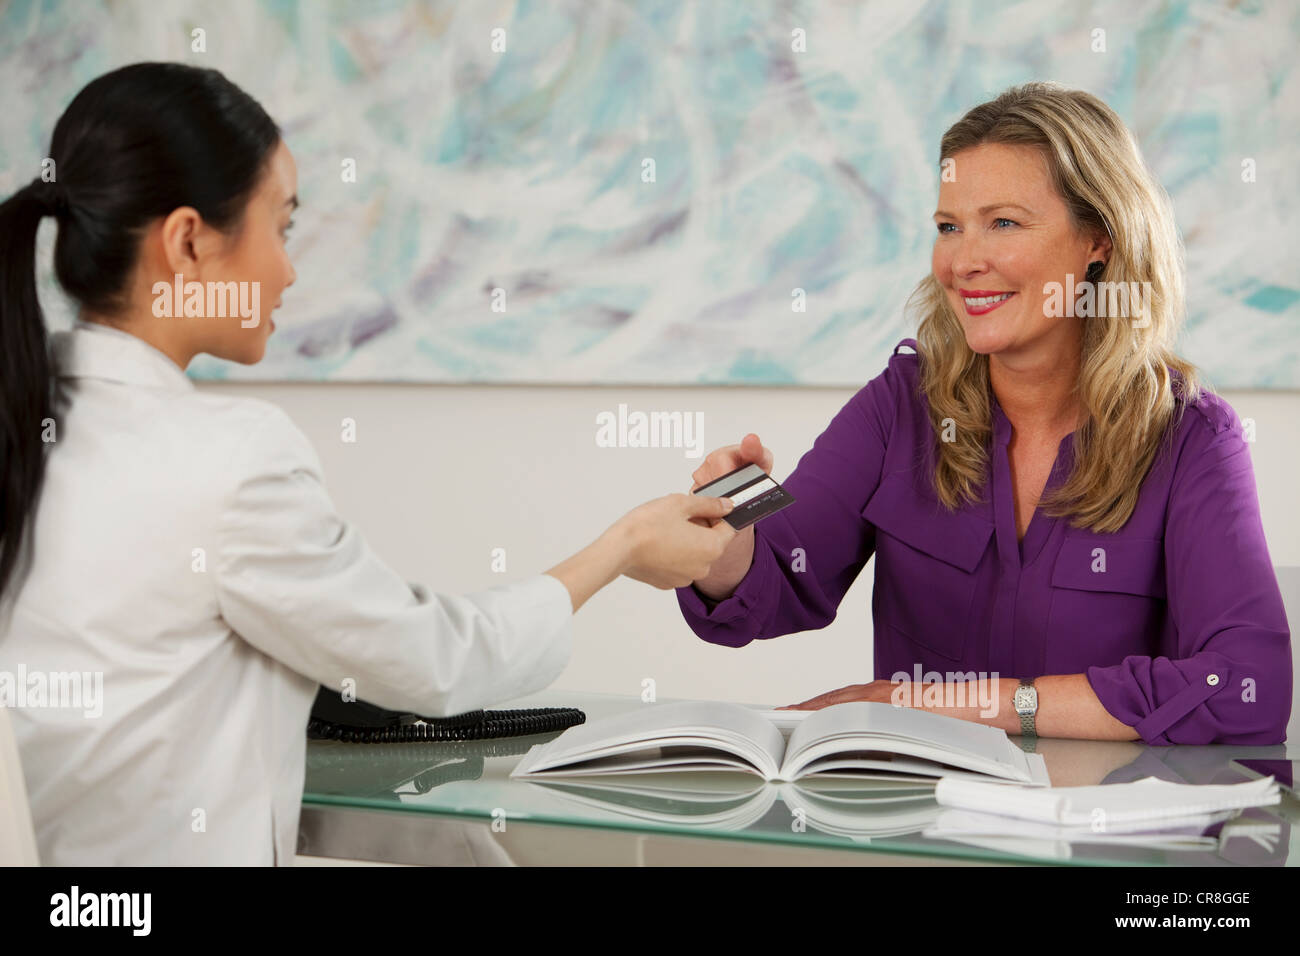 Art dealer taking credit card from young woman at desk in gallery - Stock Image